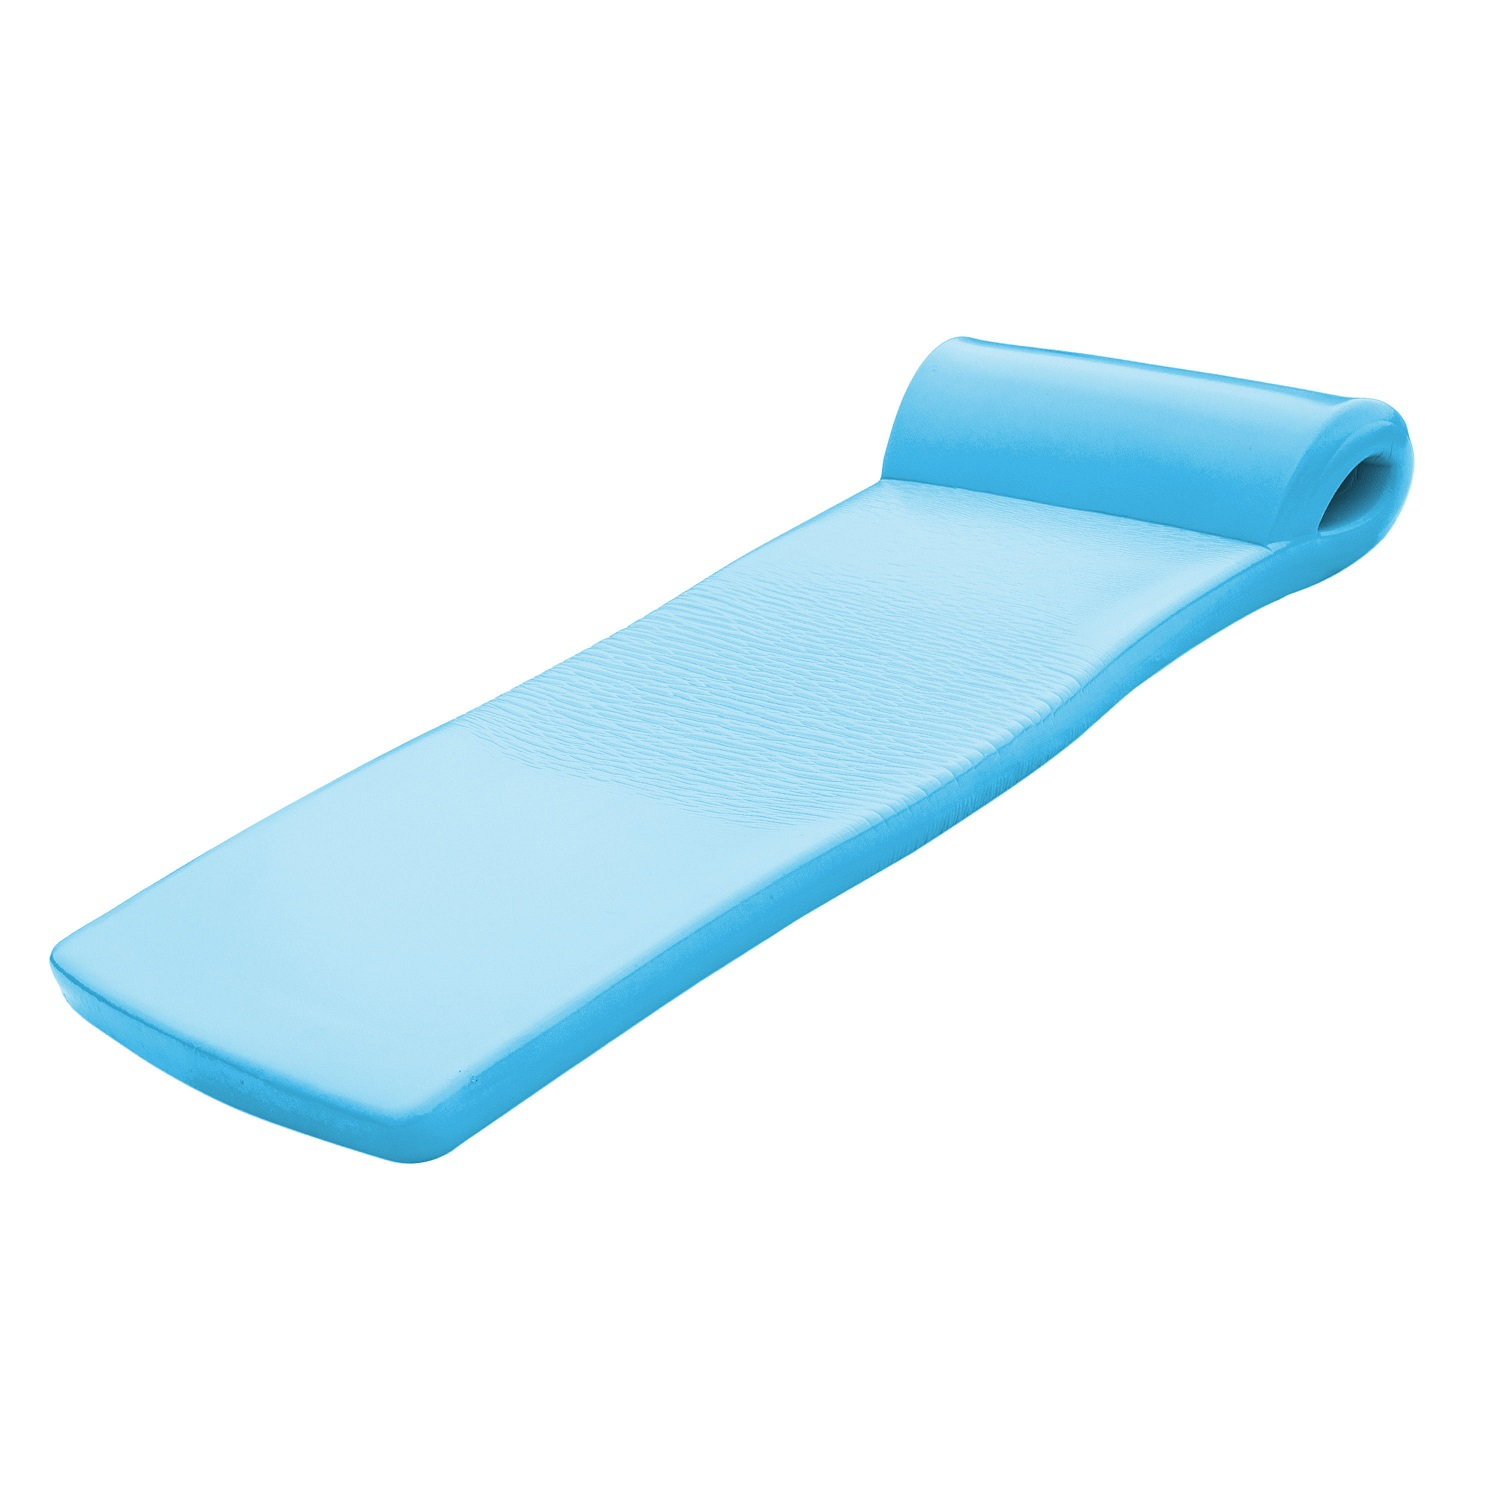 TRC Ultra Sunsation Pool Float Marina Blue